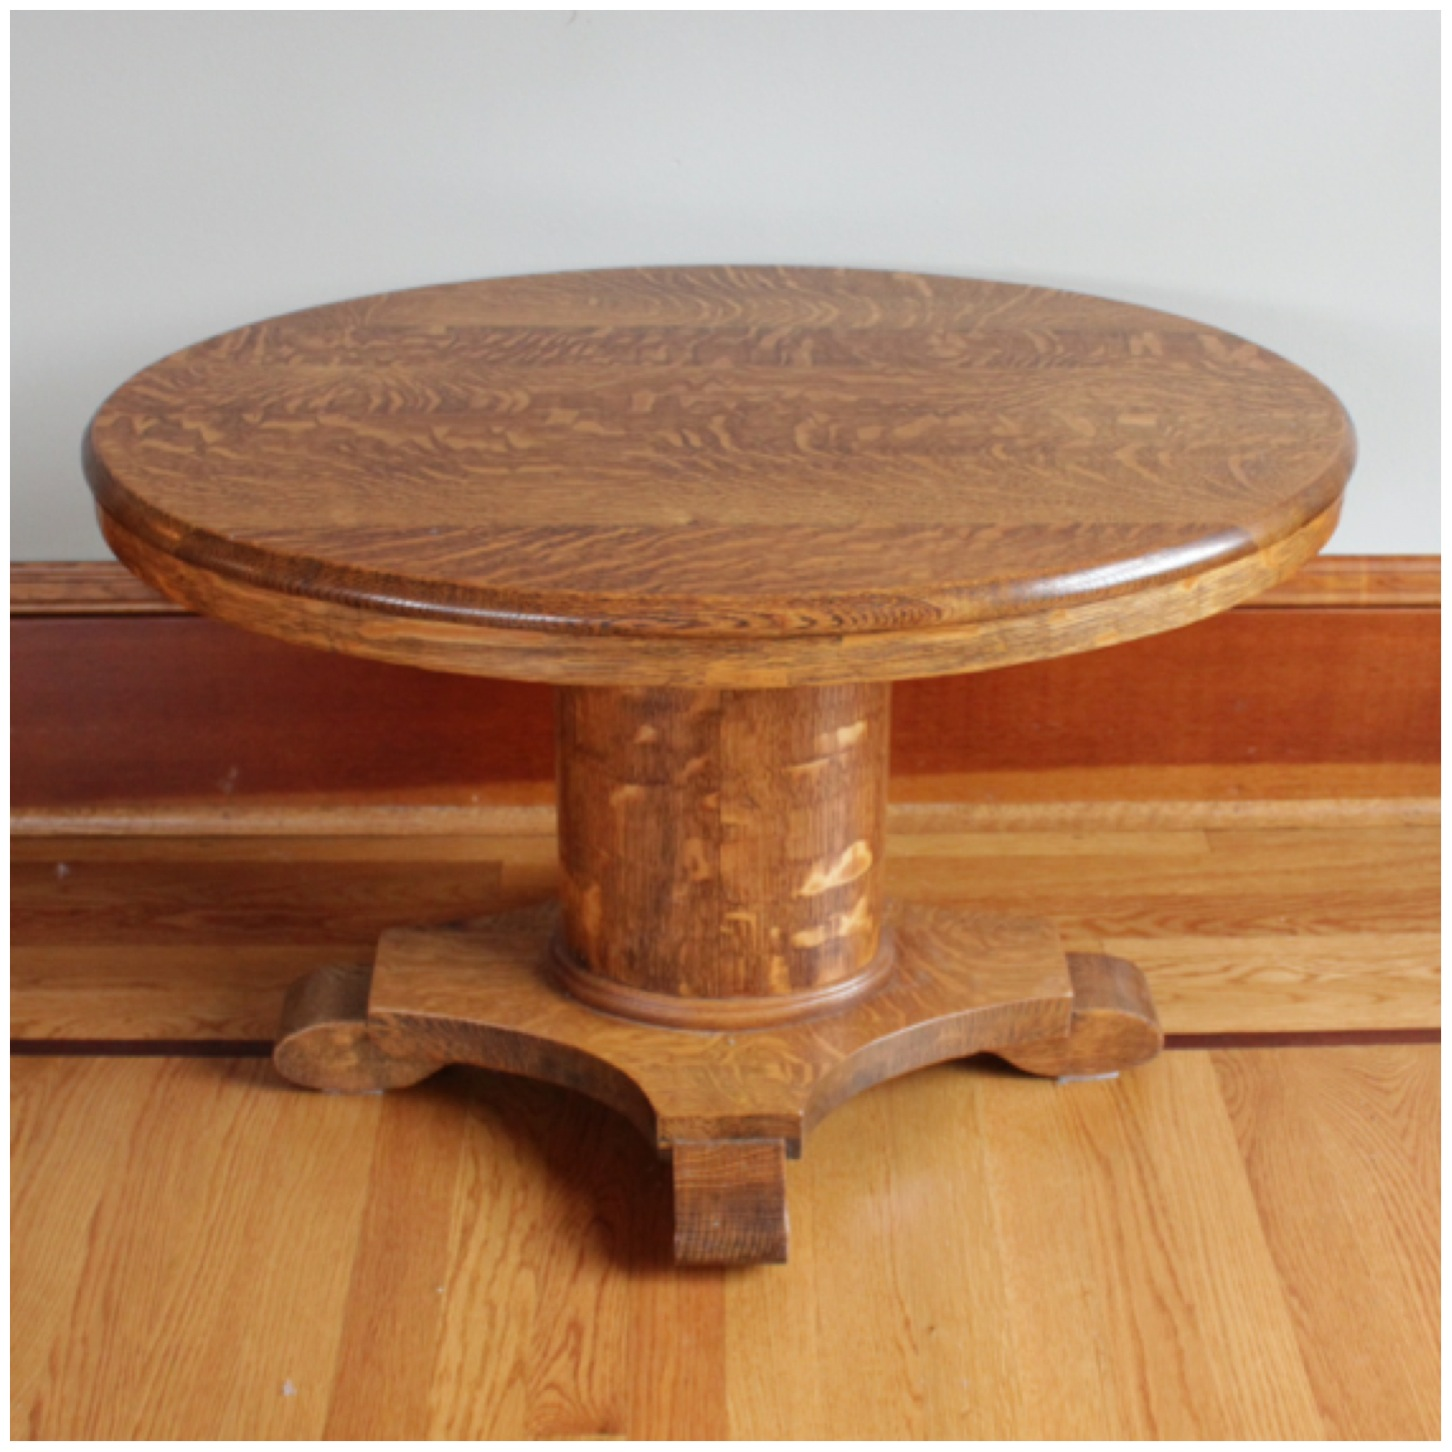 Oval Banded Coffee Table 2195 to pin on Pinterest